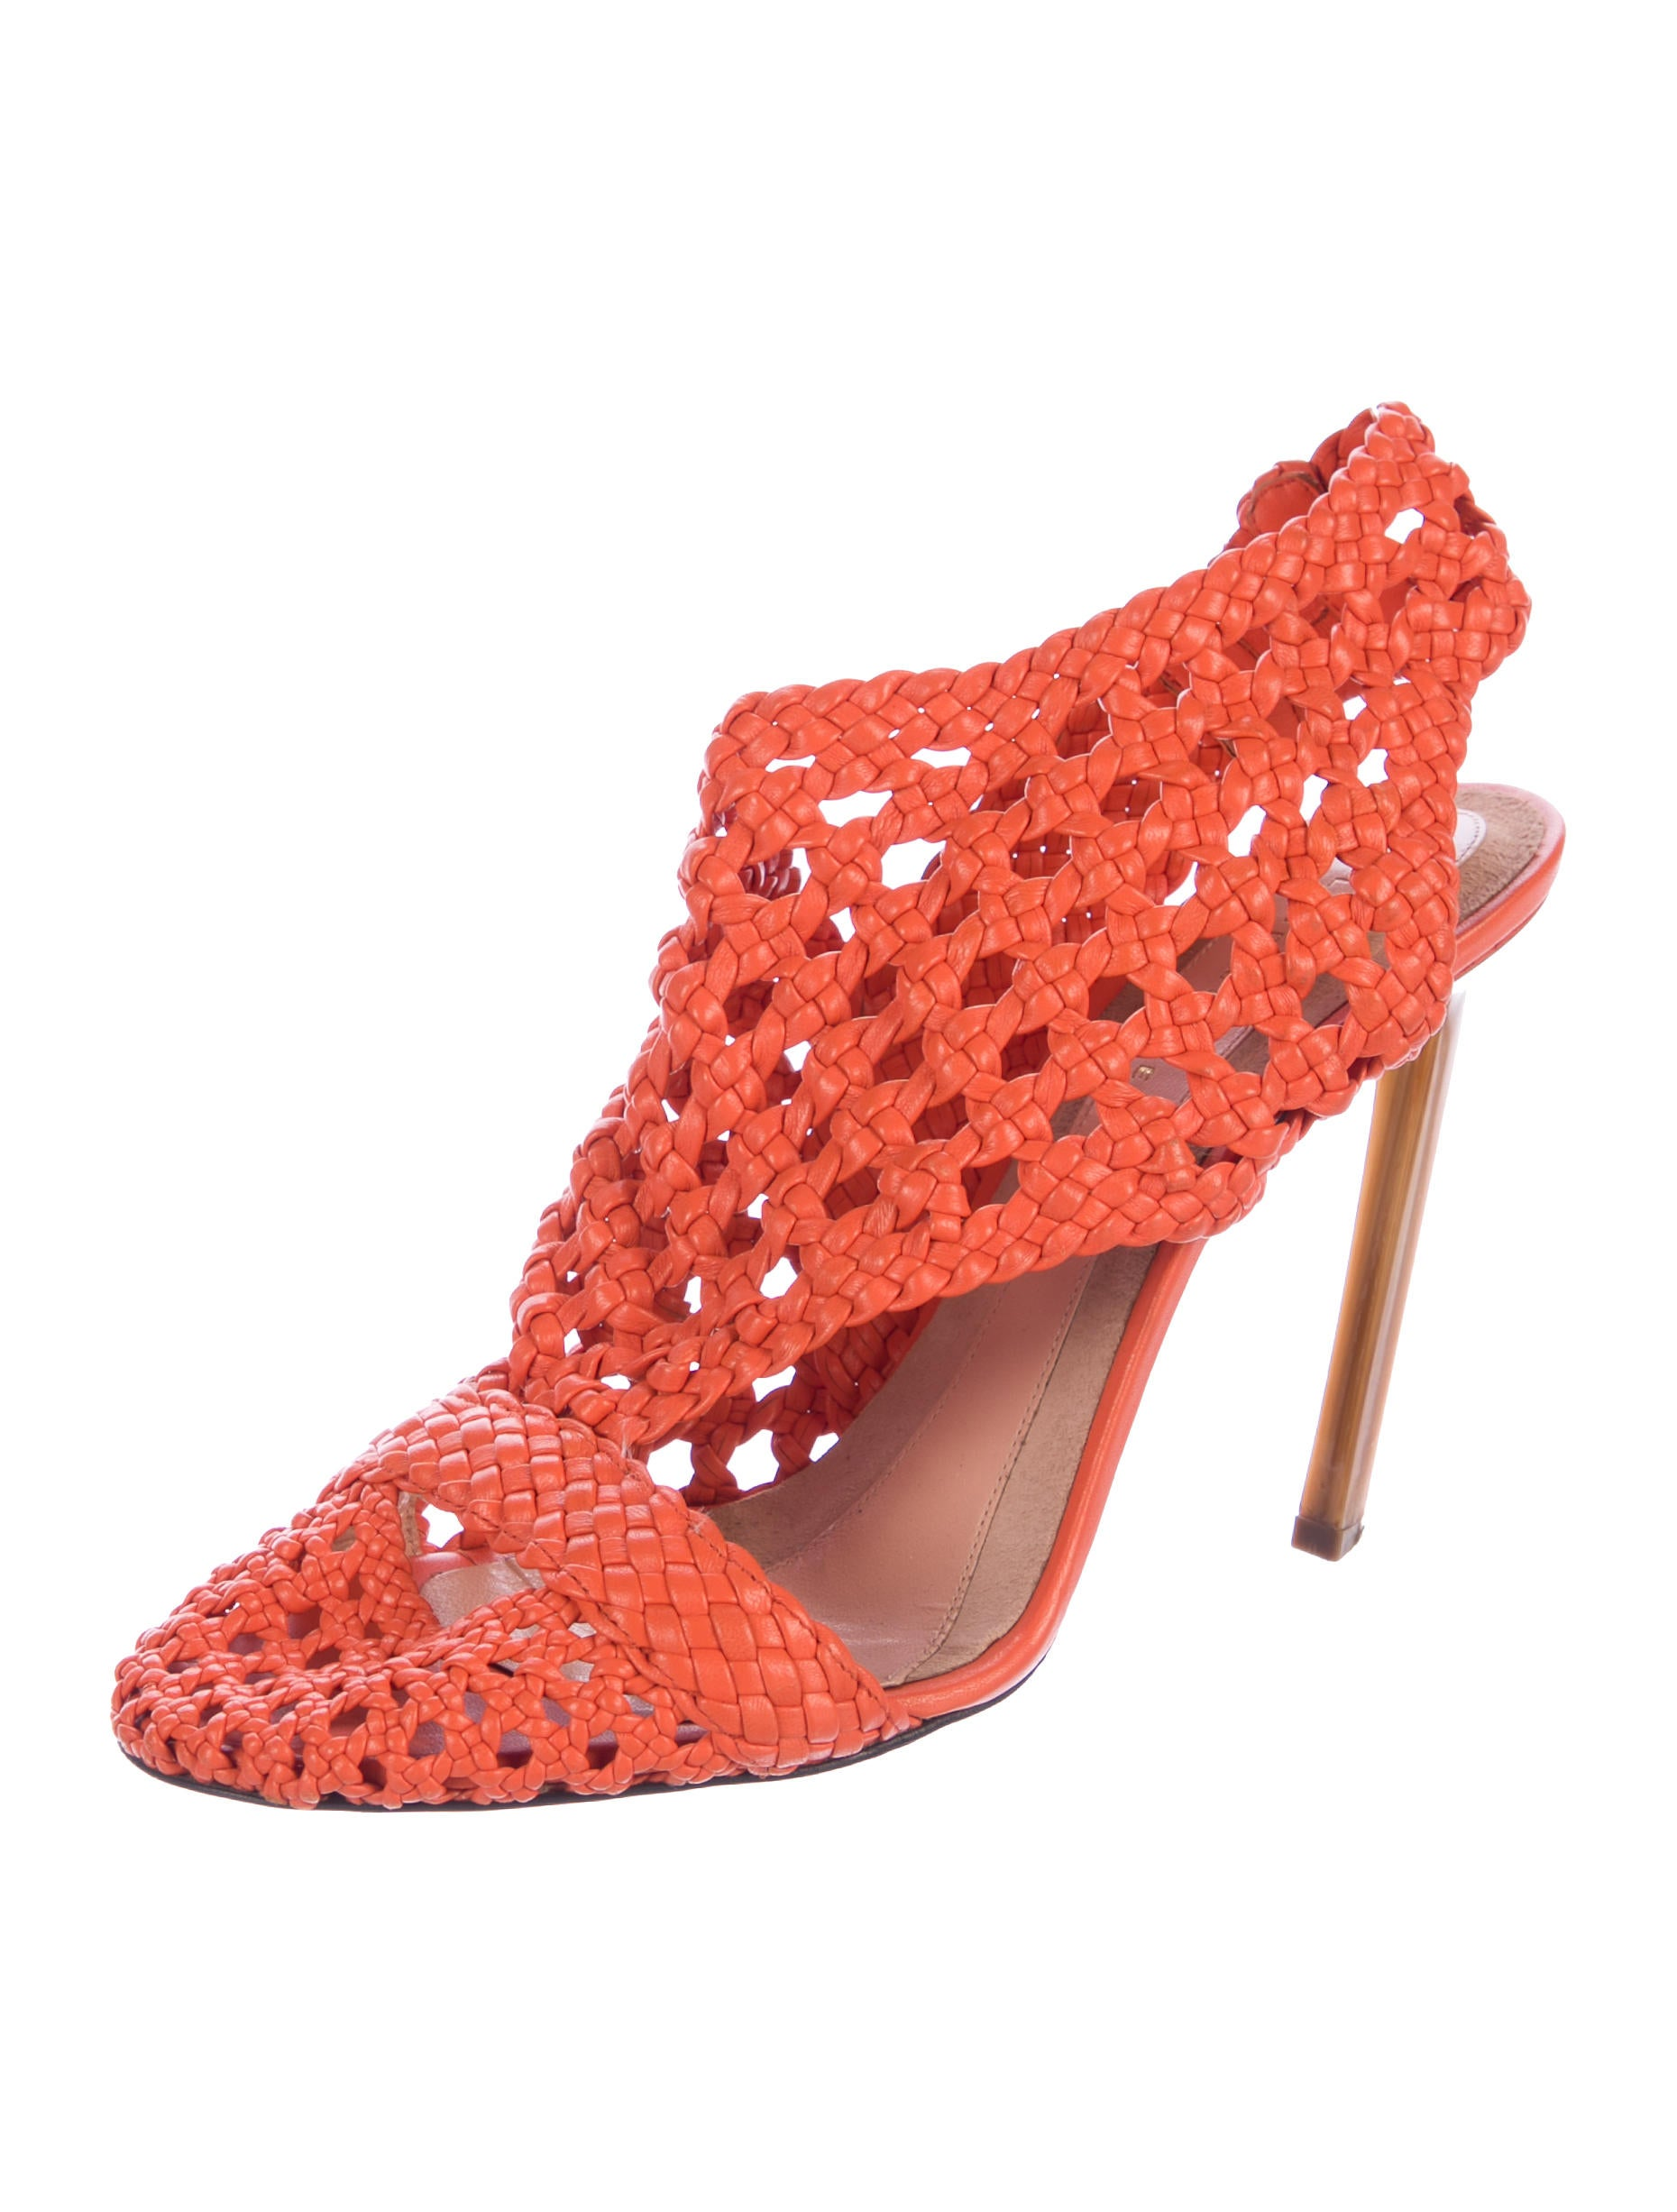 cheap sale under $60 pay with visa for sale Roland Mouret Braided Cutout Pumps cheap sale get to buy buy cheap eastbay new styles for sale BjLQGJGzW